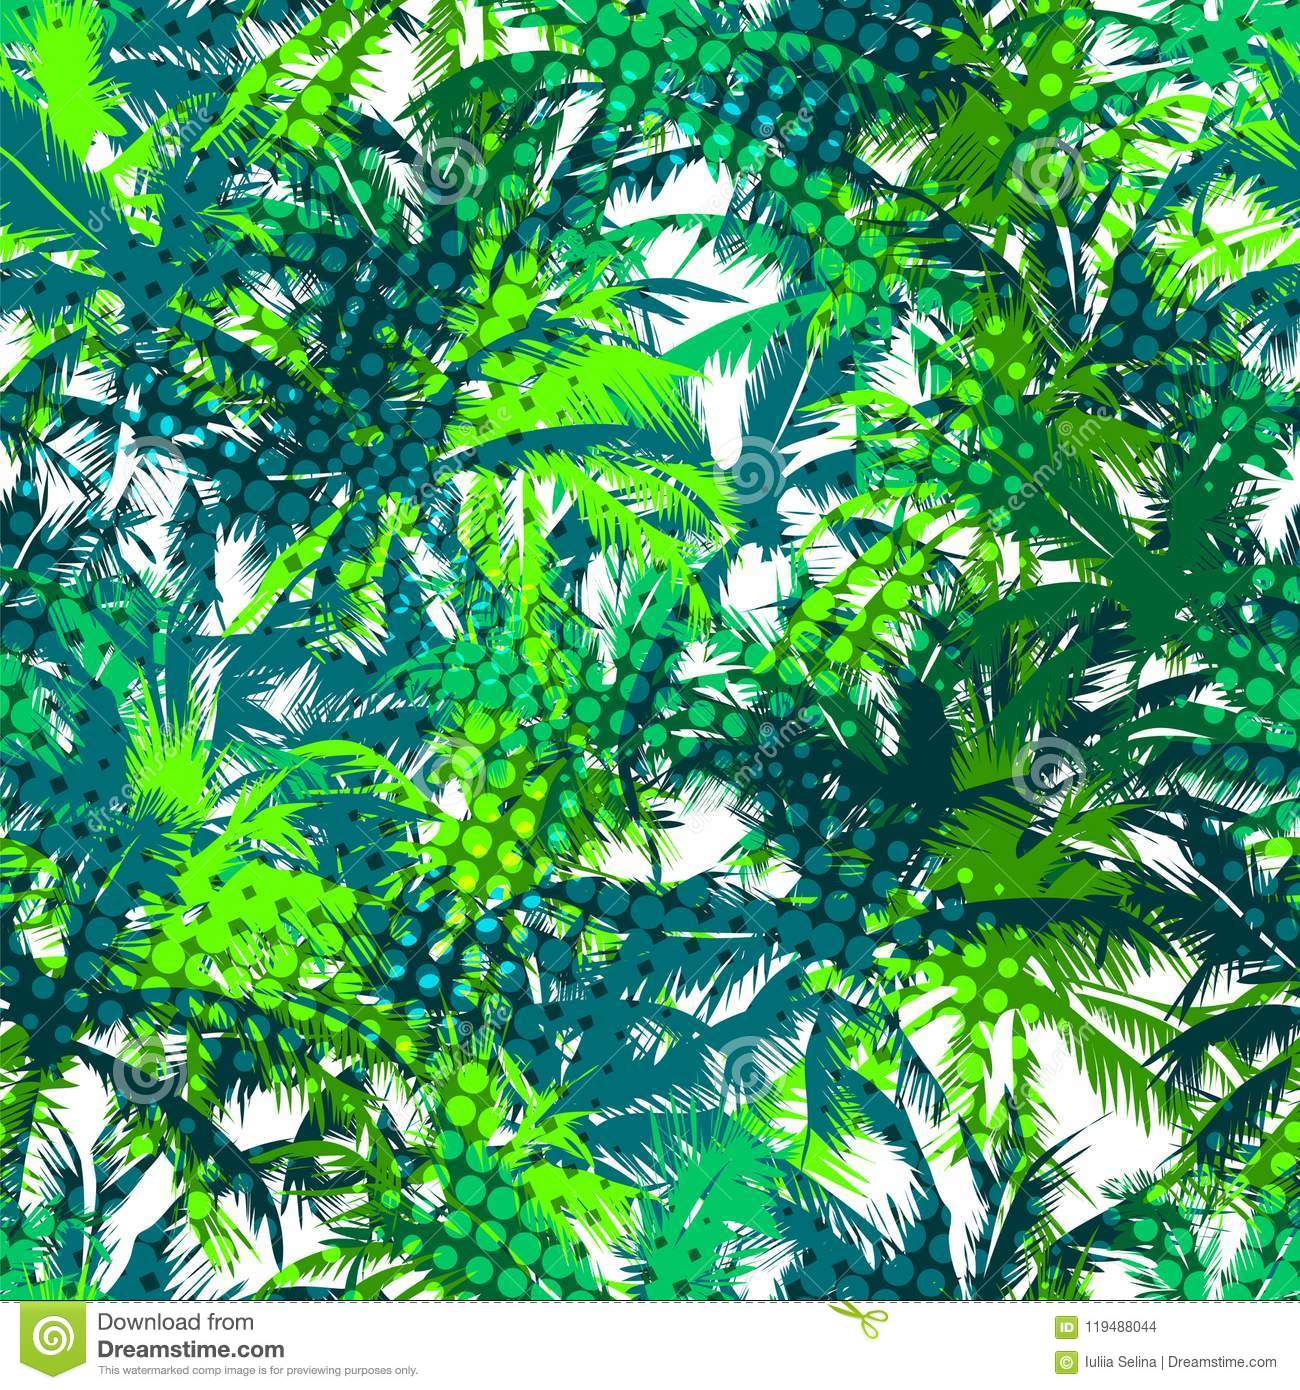 Tropical seamless background with coconut palm trees. Jungalow multicolor wallpaper. Hawaiian style